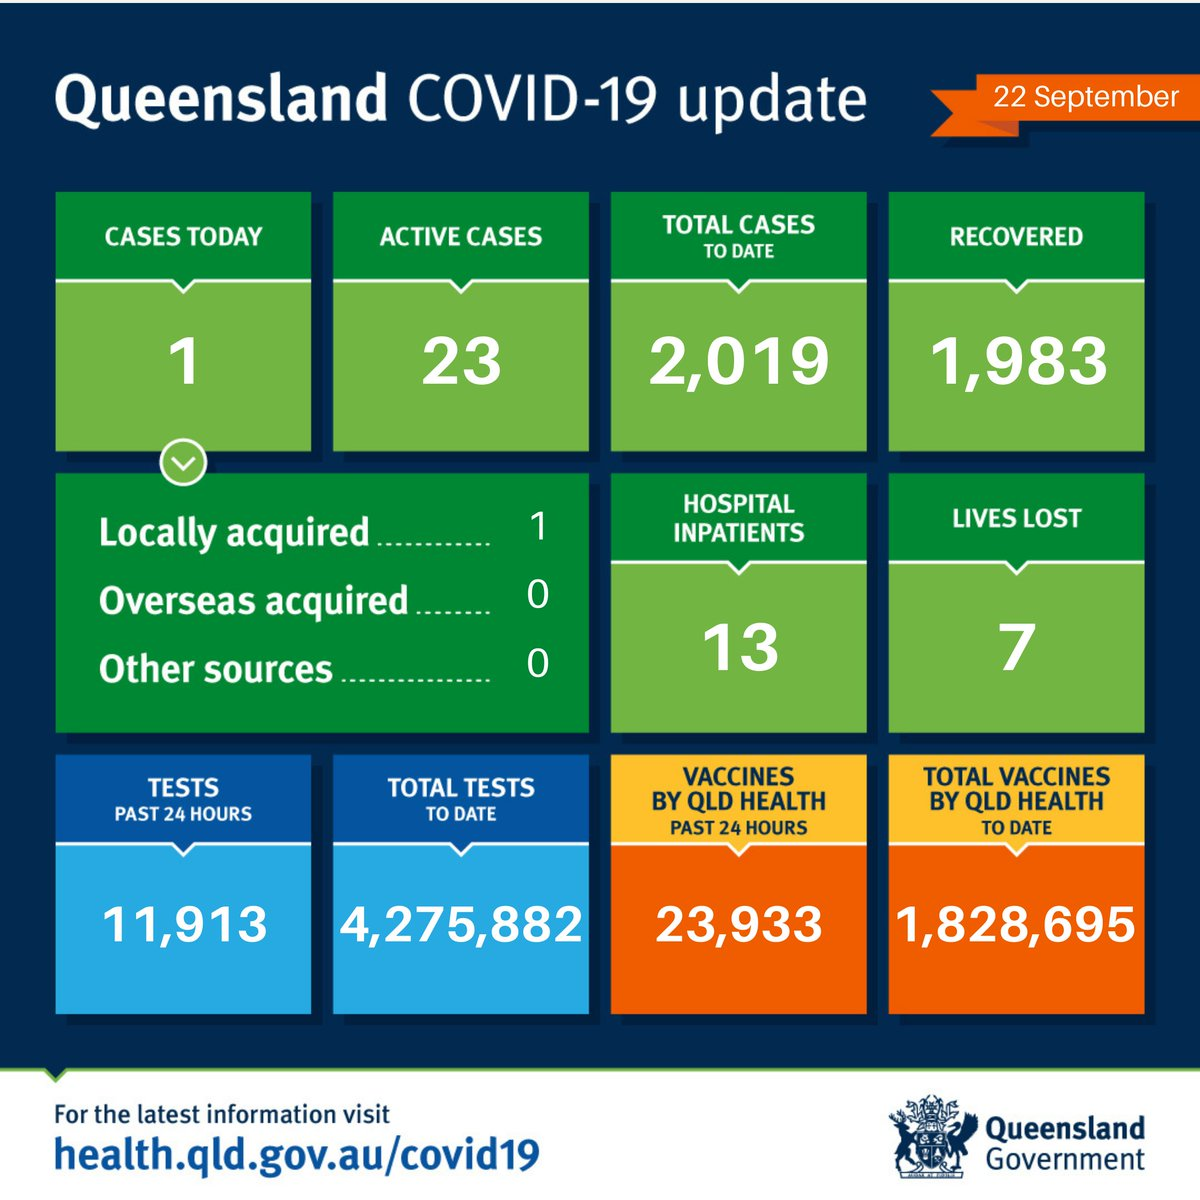 Queensland #COVID19 update 22/09/21 Today we have recorded 1 new case of COVID-19, which was locally acquired and detected in home quarantine. Detailed information about COVID-19 cases in Queensland, can be found here: health.qld.gov.au/covid-data